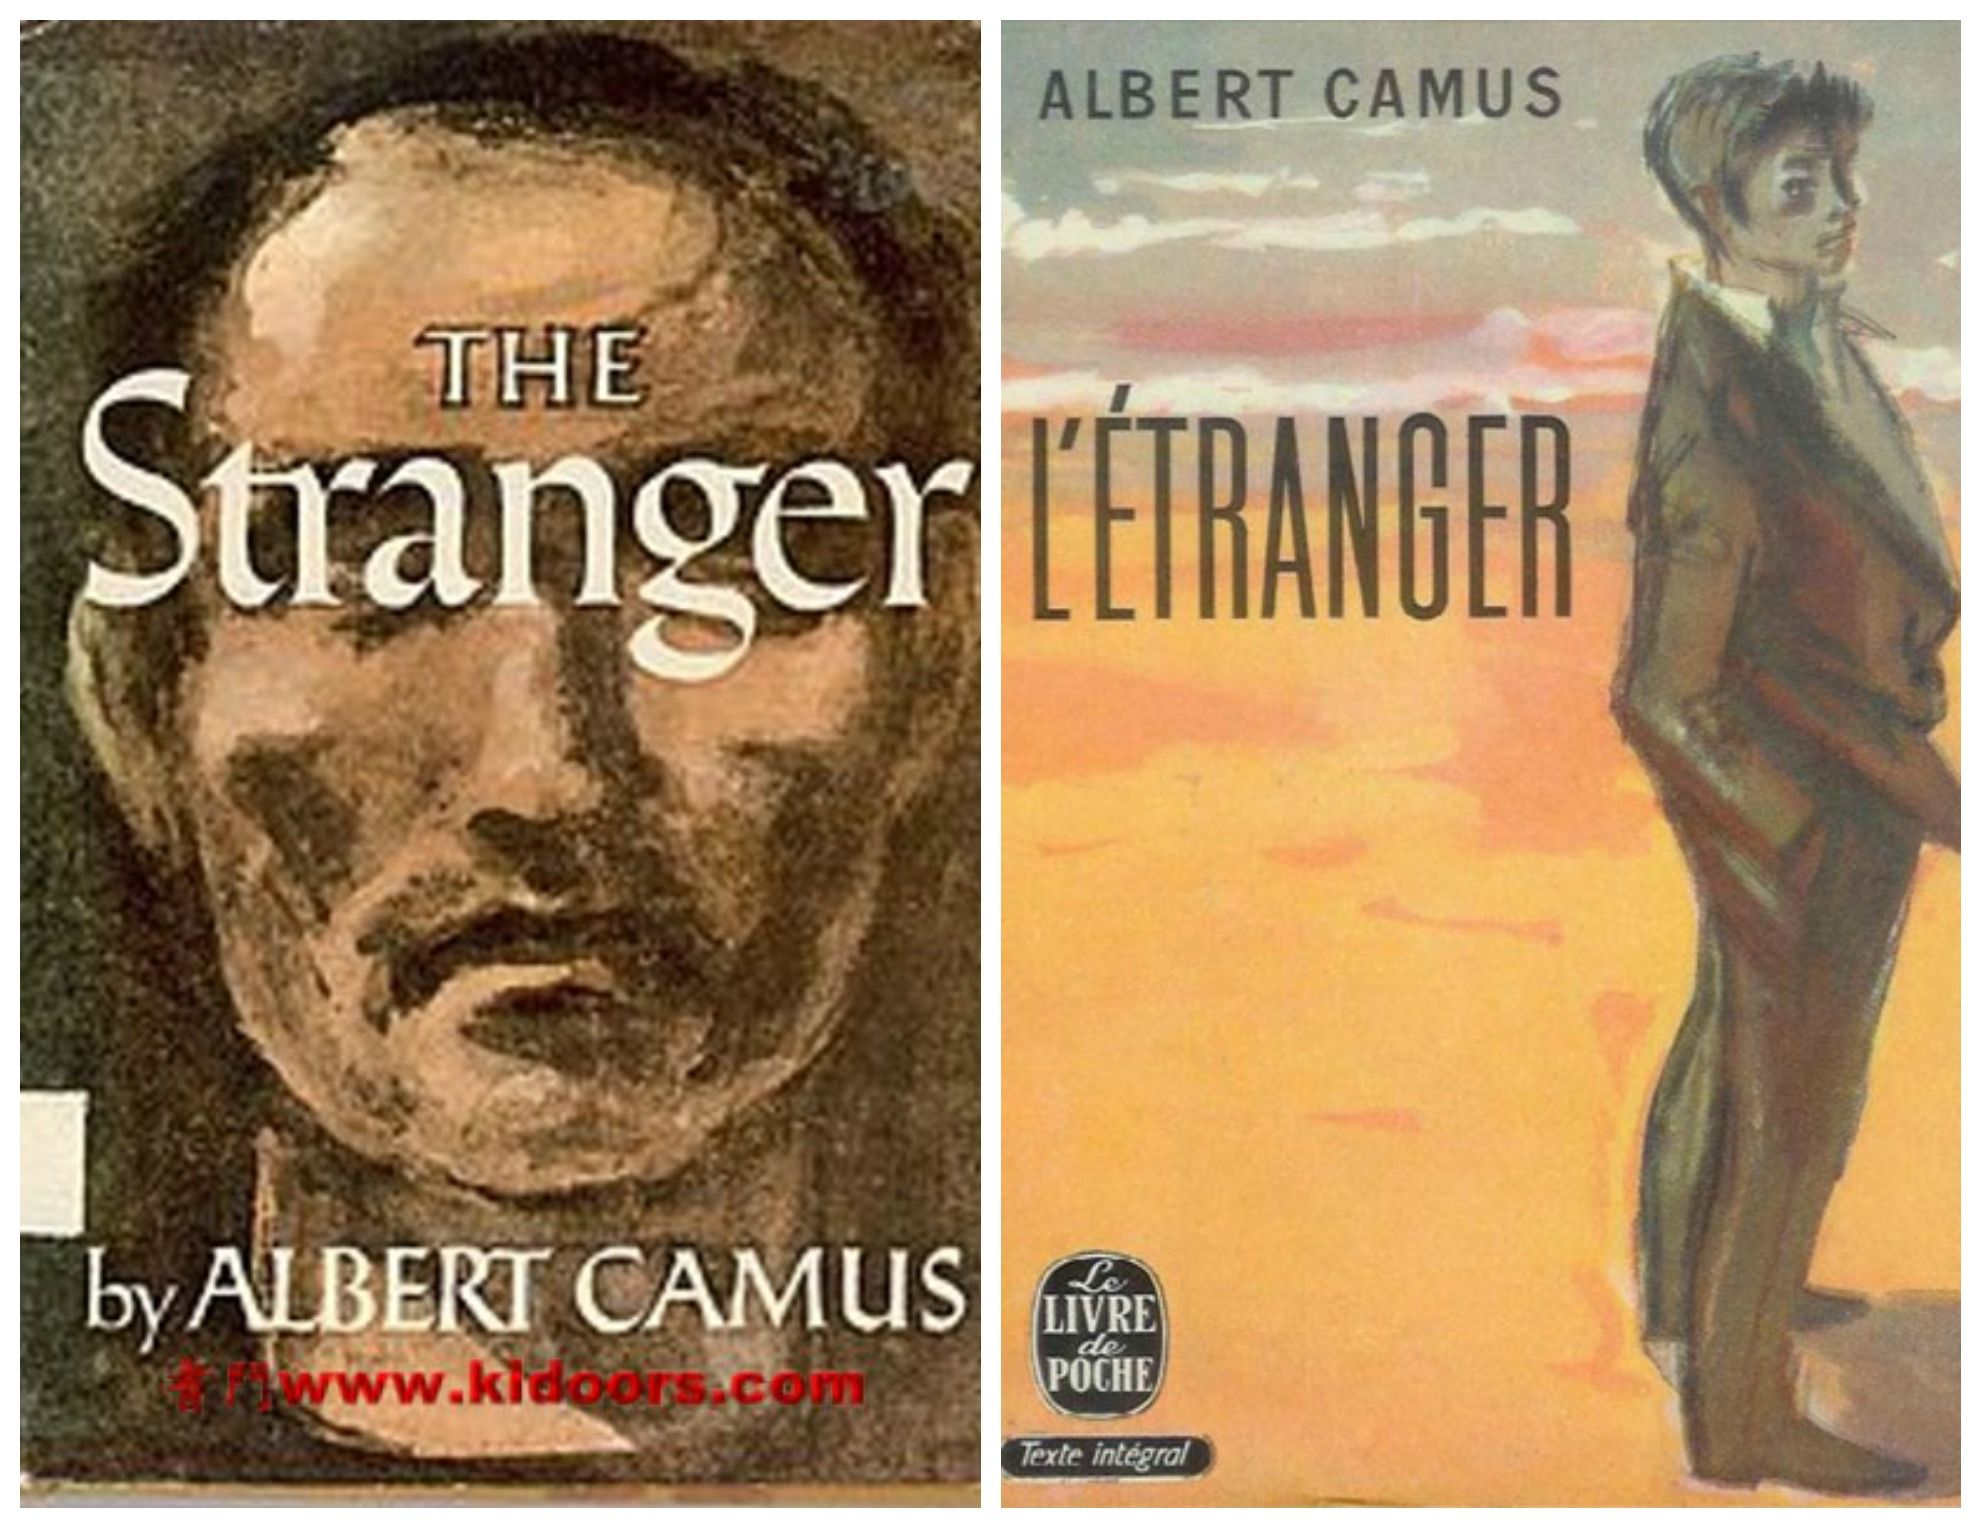 best ideas about the stranger albert camus from l eacutetranger the stranger by albert camus at ridgewood he